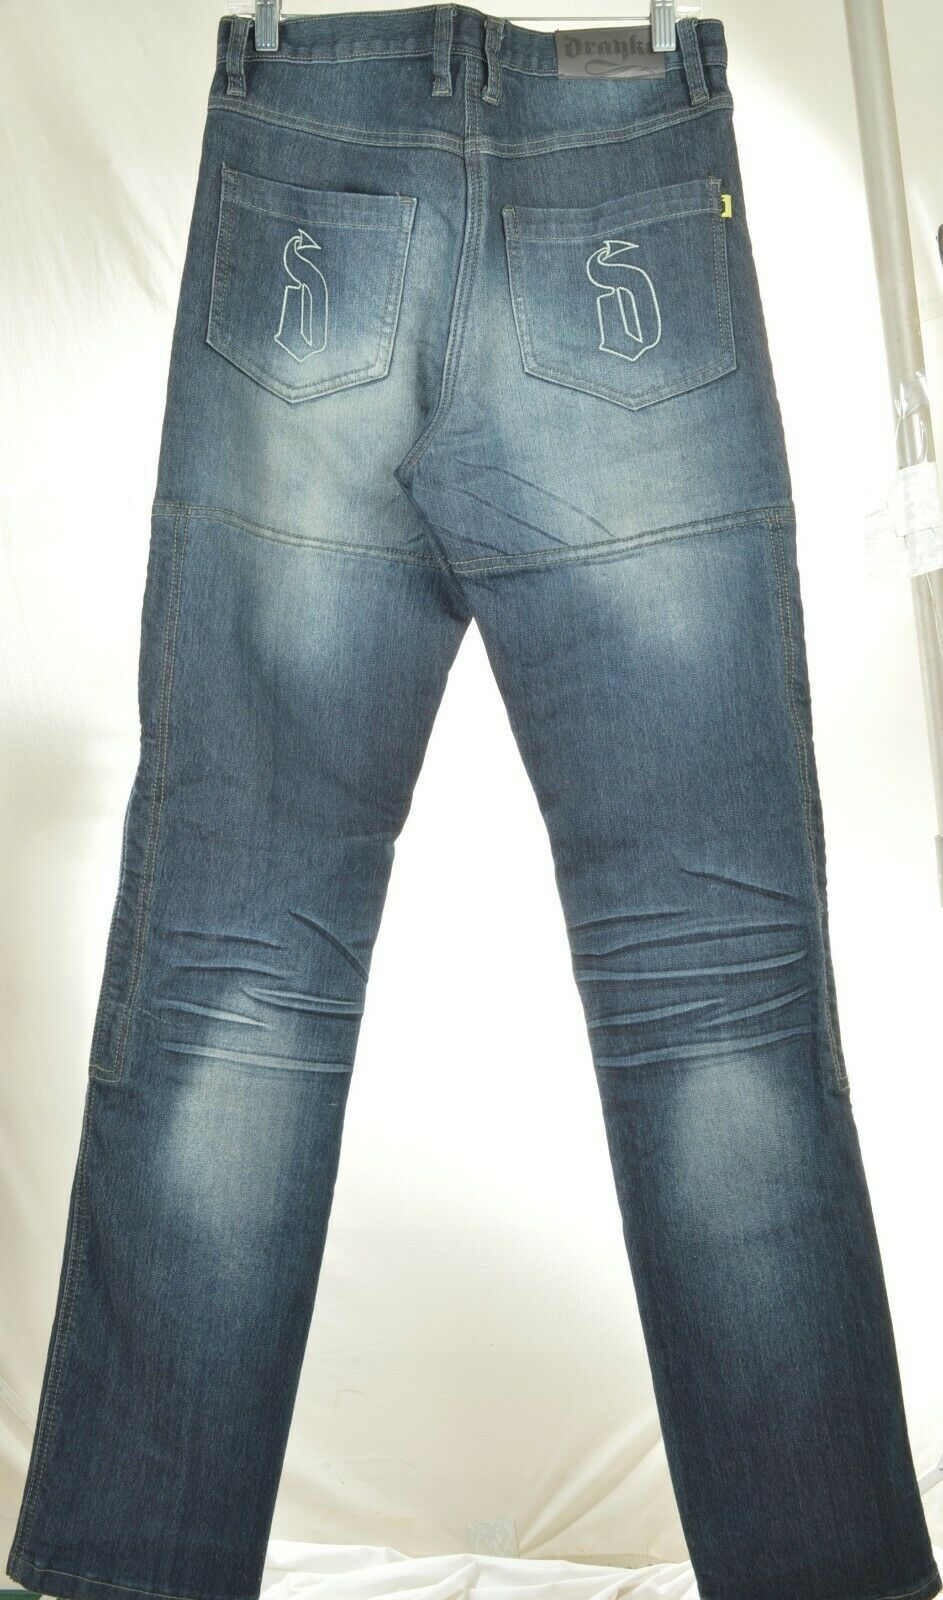 Drayko Jeans Mens 30 x 37 Motorcycle Riding extra long padded - Slightly Used image 9